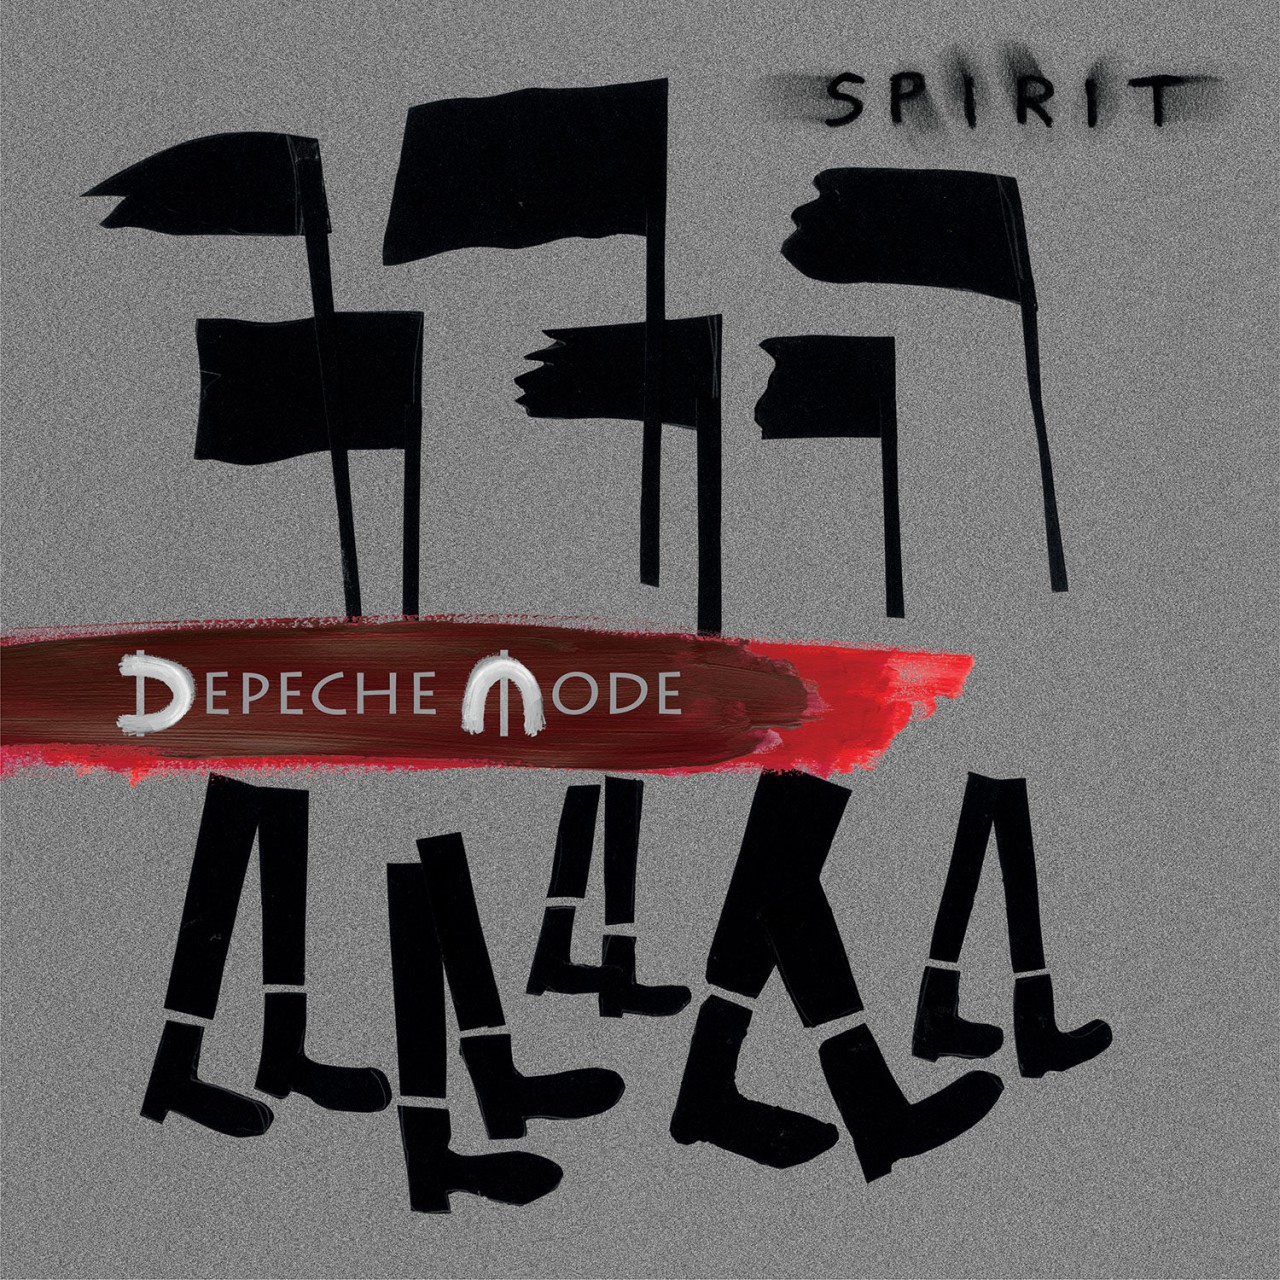 Depeche Mode: Spirit (2017) Book Cover